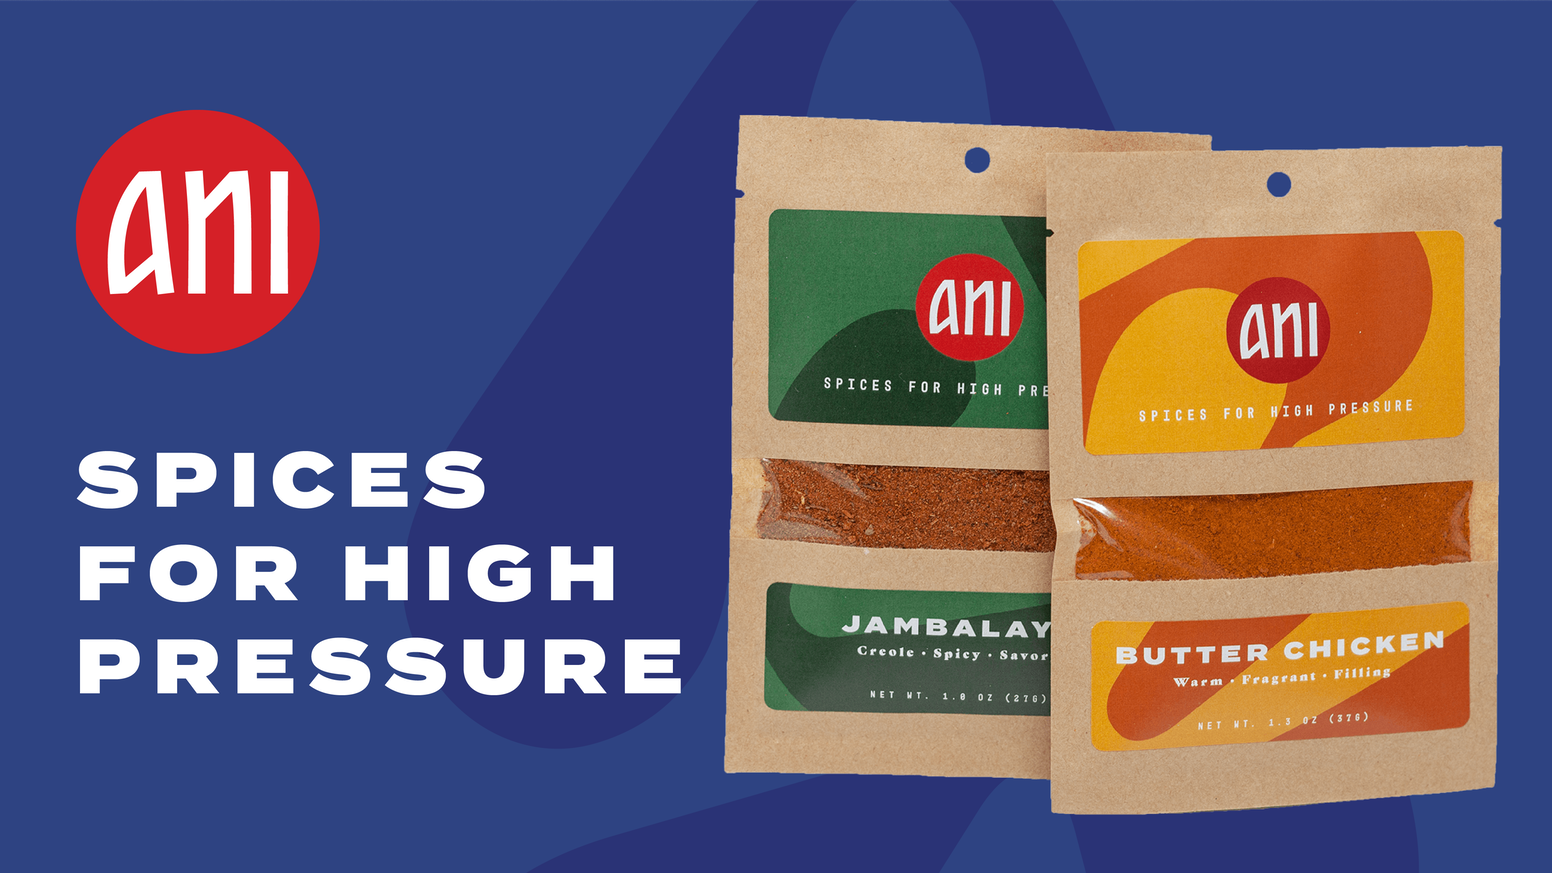 Ani Spices recipes & spice packs are specifically made for your pressure cooker. We make pressure cooking even easier!